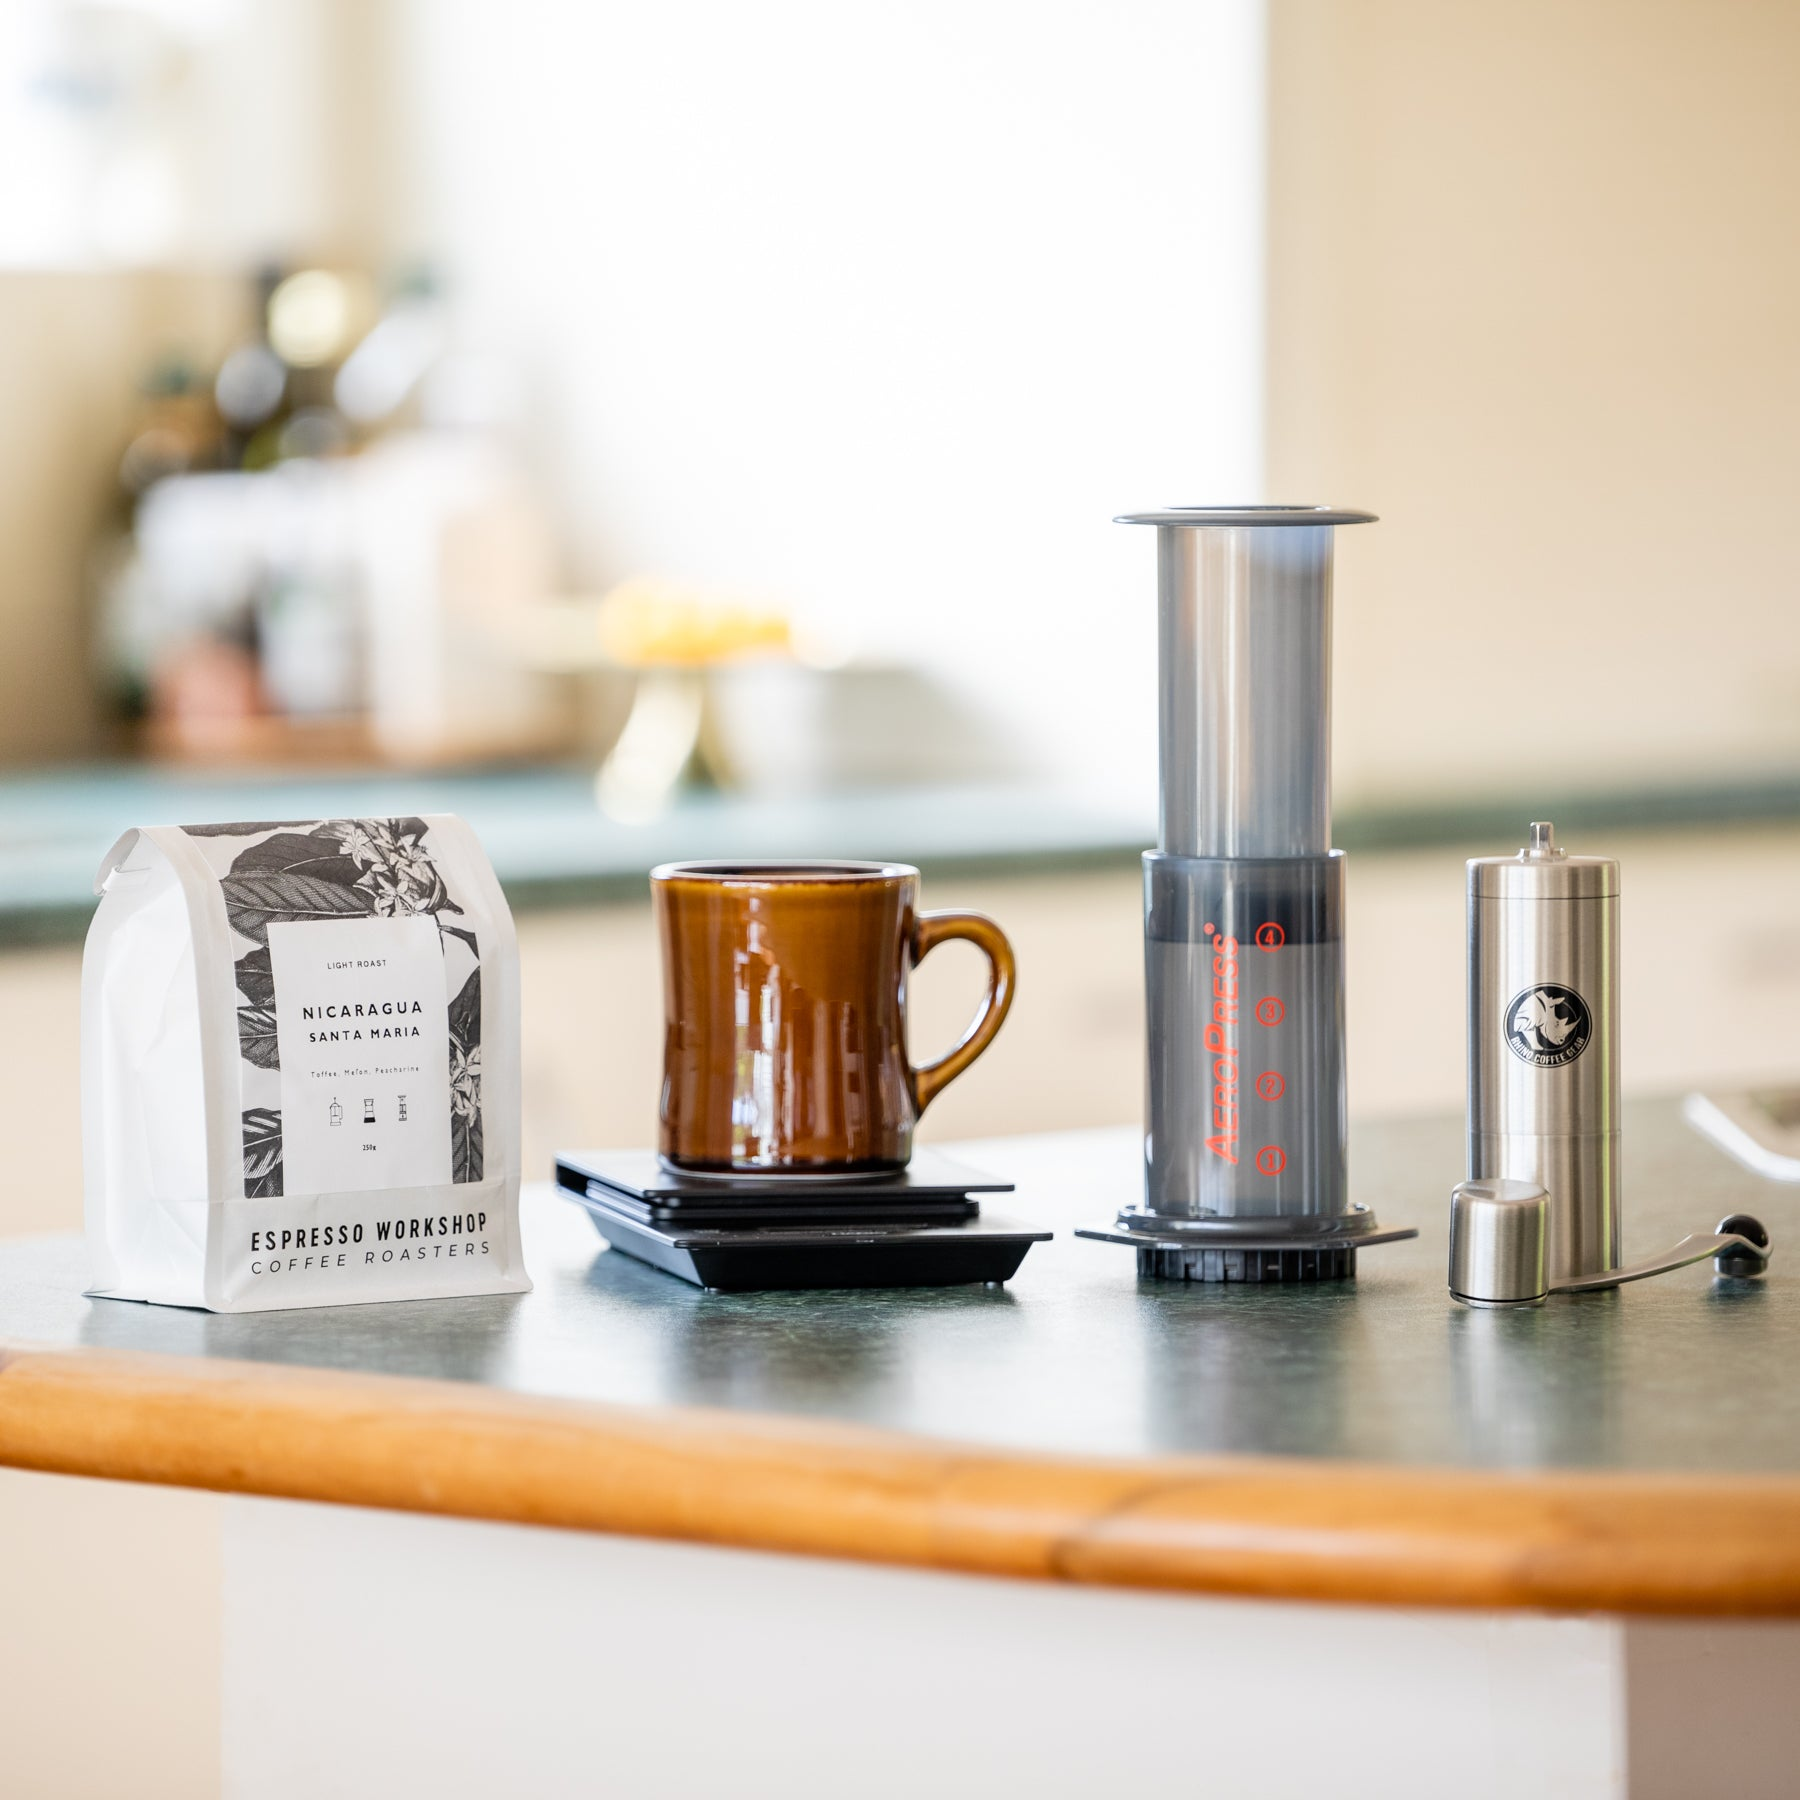 The Aeropress Kit: Espresso Workshop At Home